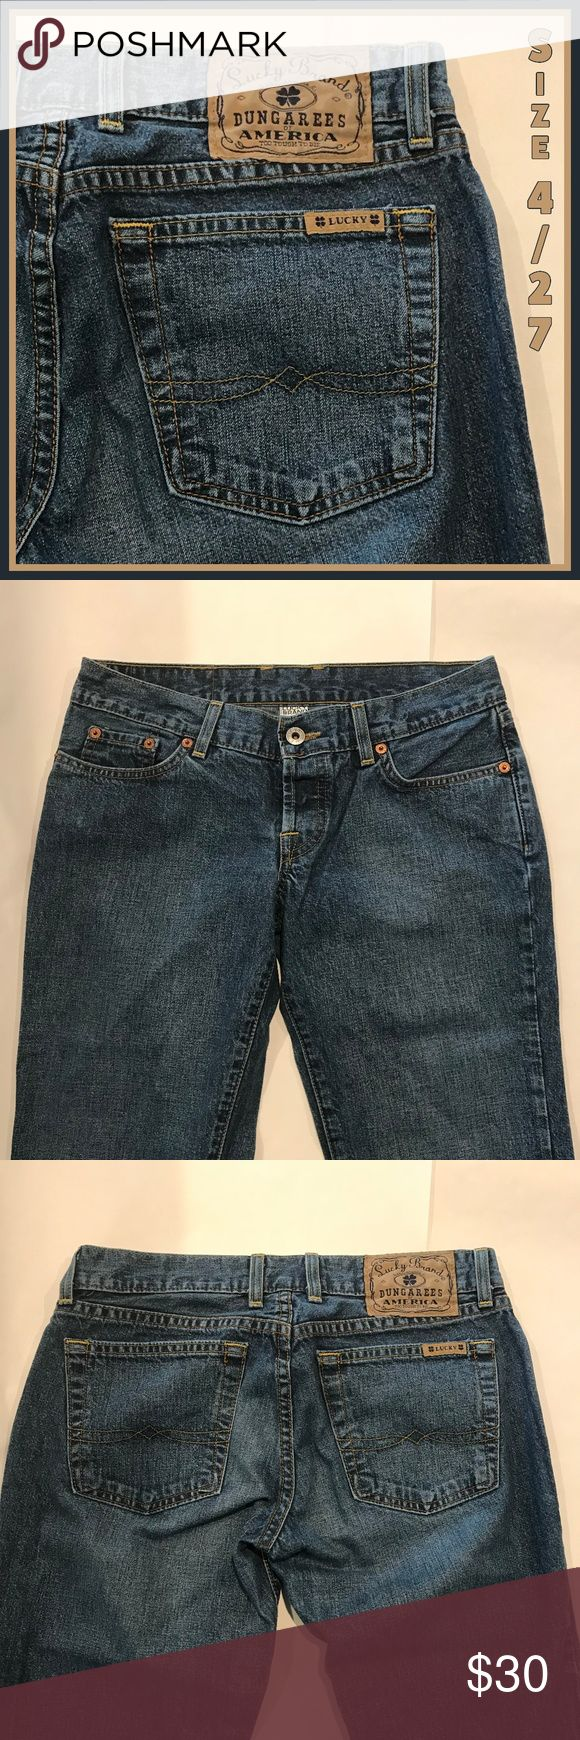 🍇 Lucky Brand Dungarees Jeans Blue Bootcut 4 27 I love the classic dungaree look of these jeans from Lucky Brand. They are in EUC and ready to become your favorite pair!  Measurements:  •	Waist, laying flat across front:  •	Inseam:  •	Rise:   From a smoke-free and happy-to-bundle closet.  No trades or transactions outside of Poshmark. [T1039] Lucky Brand Jeans Boot Cut